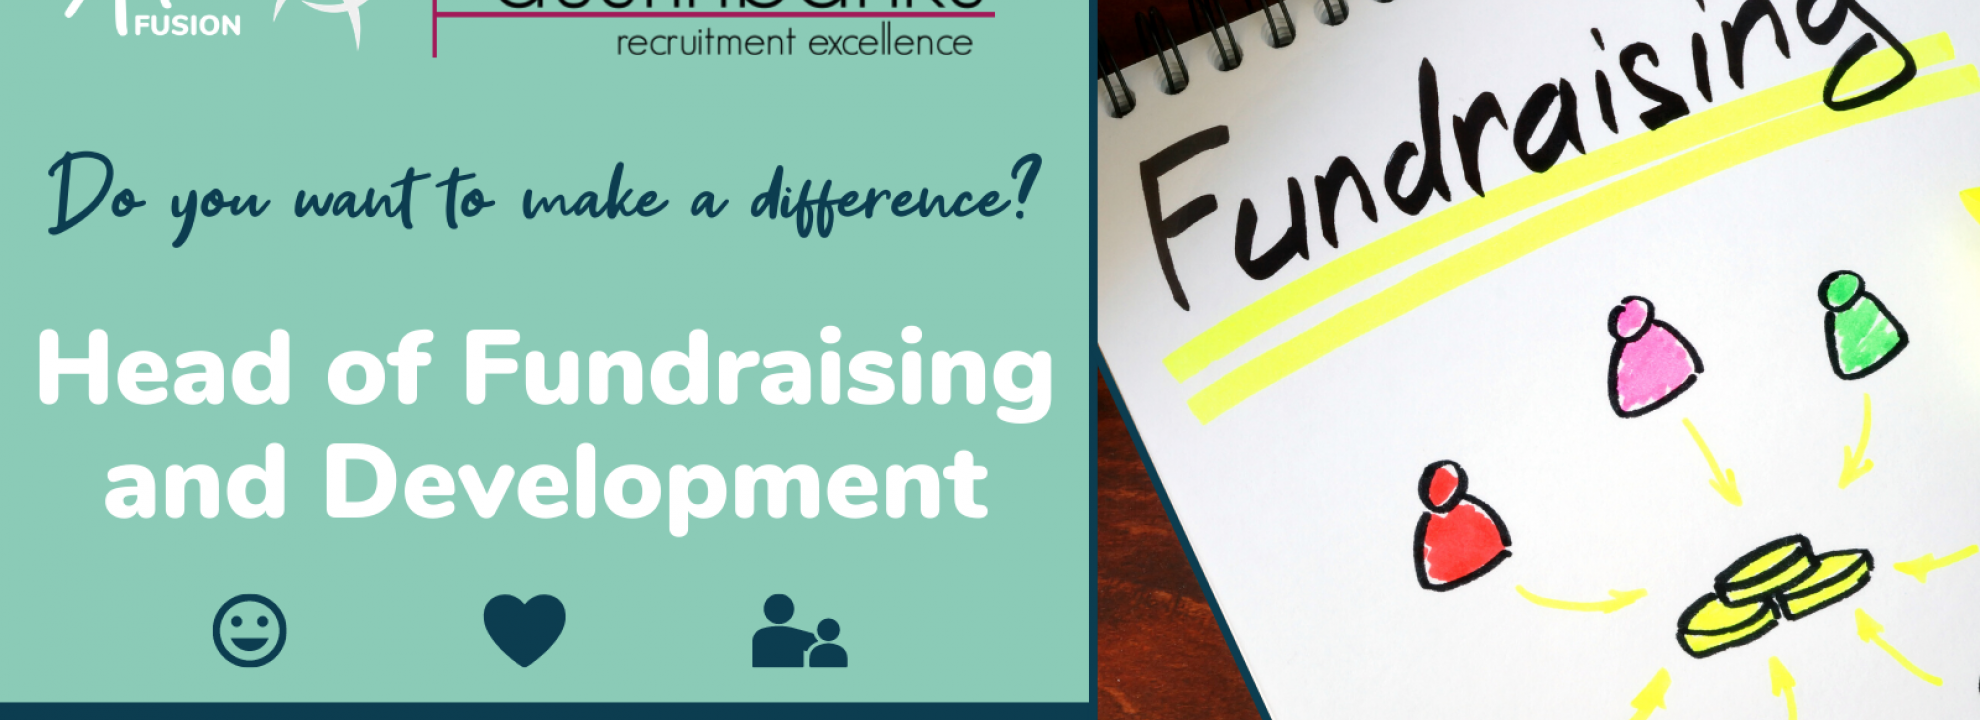 Head of Fundraising and Development Banner